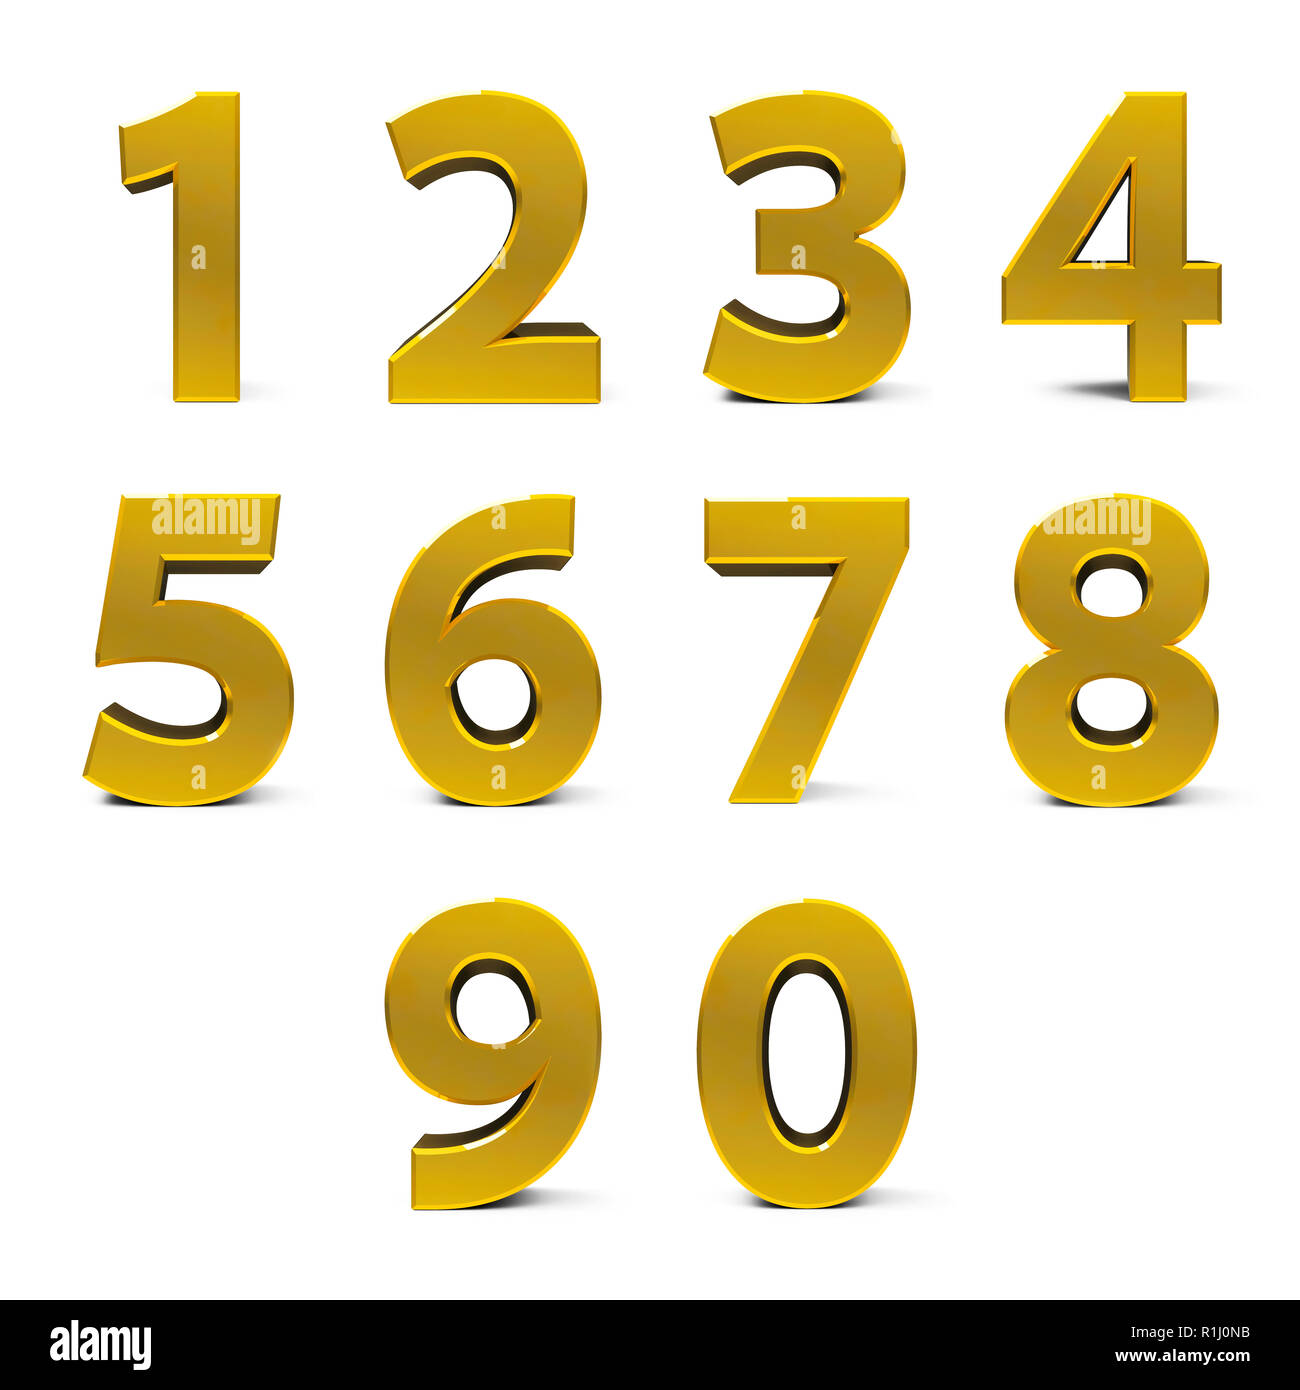 Gold numbers set from 0 to 9 isolated on white background, three-dimensional rendering, 3D illustration - Stock Image